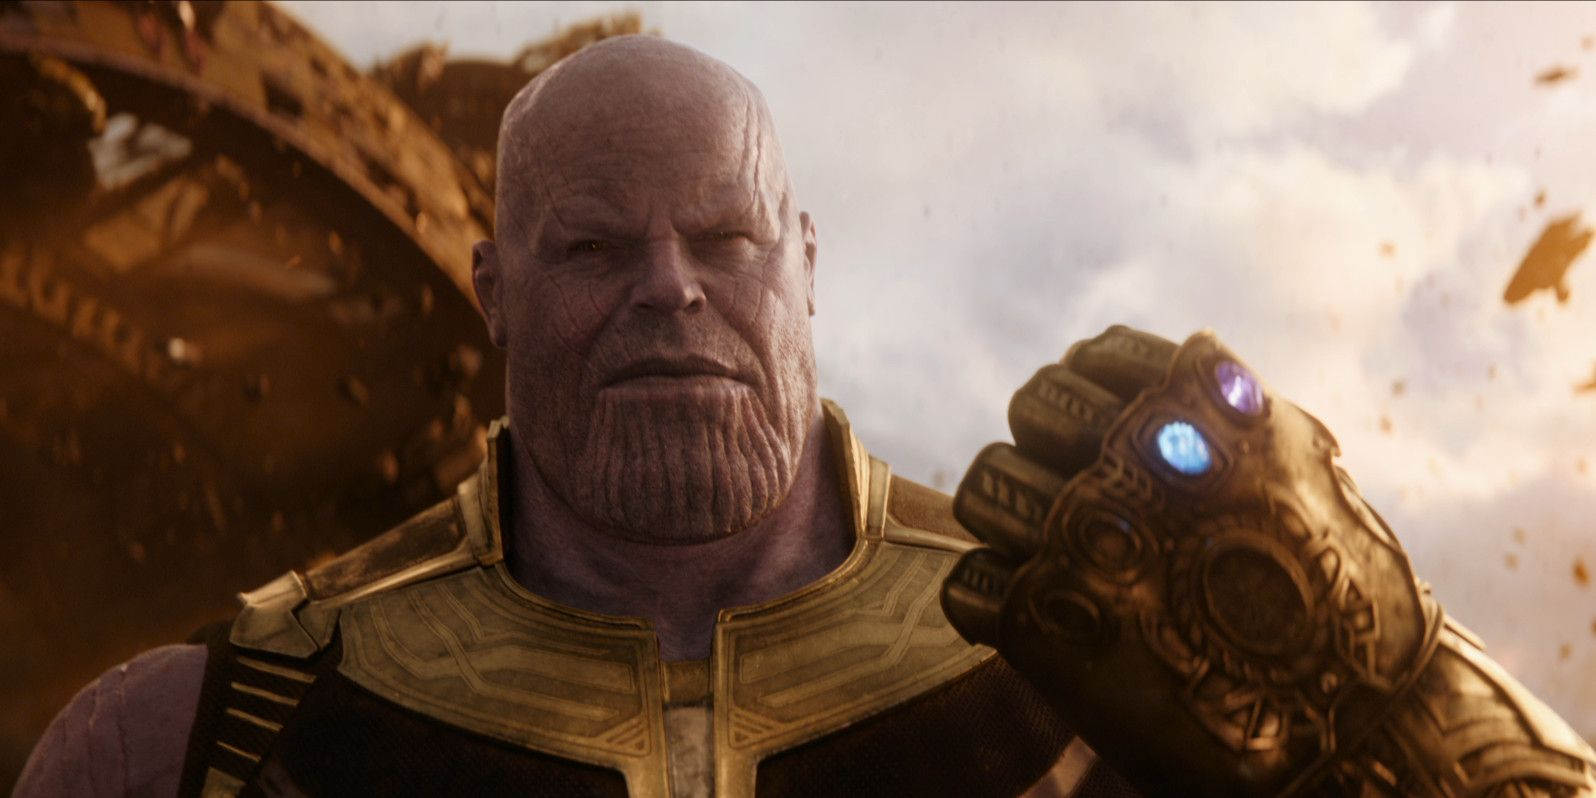 Avengers: Infinity War Dominates Social Media Buzz Thanks to Trailer